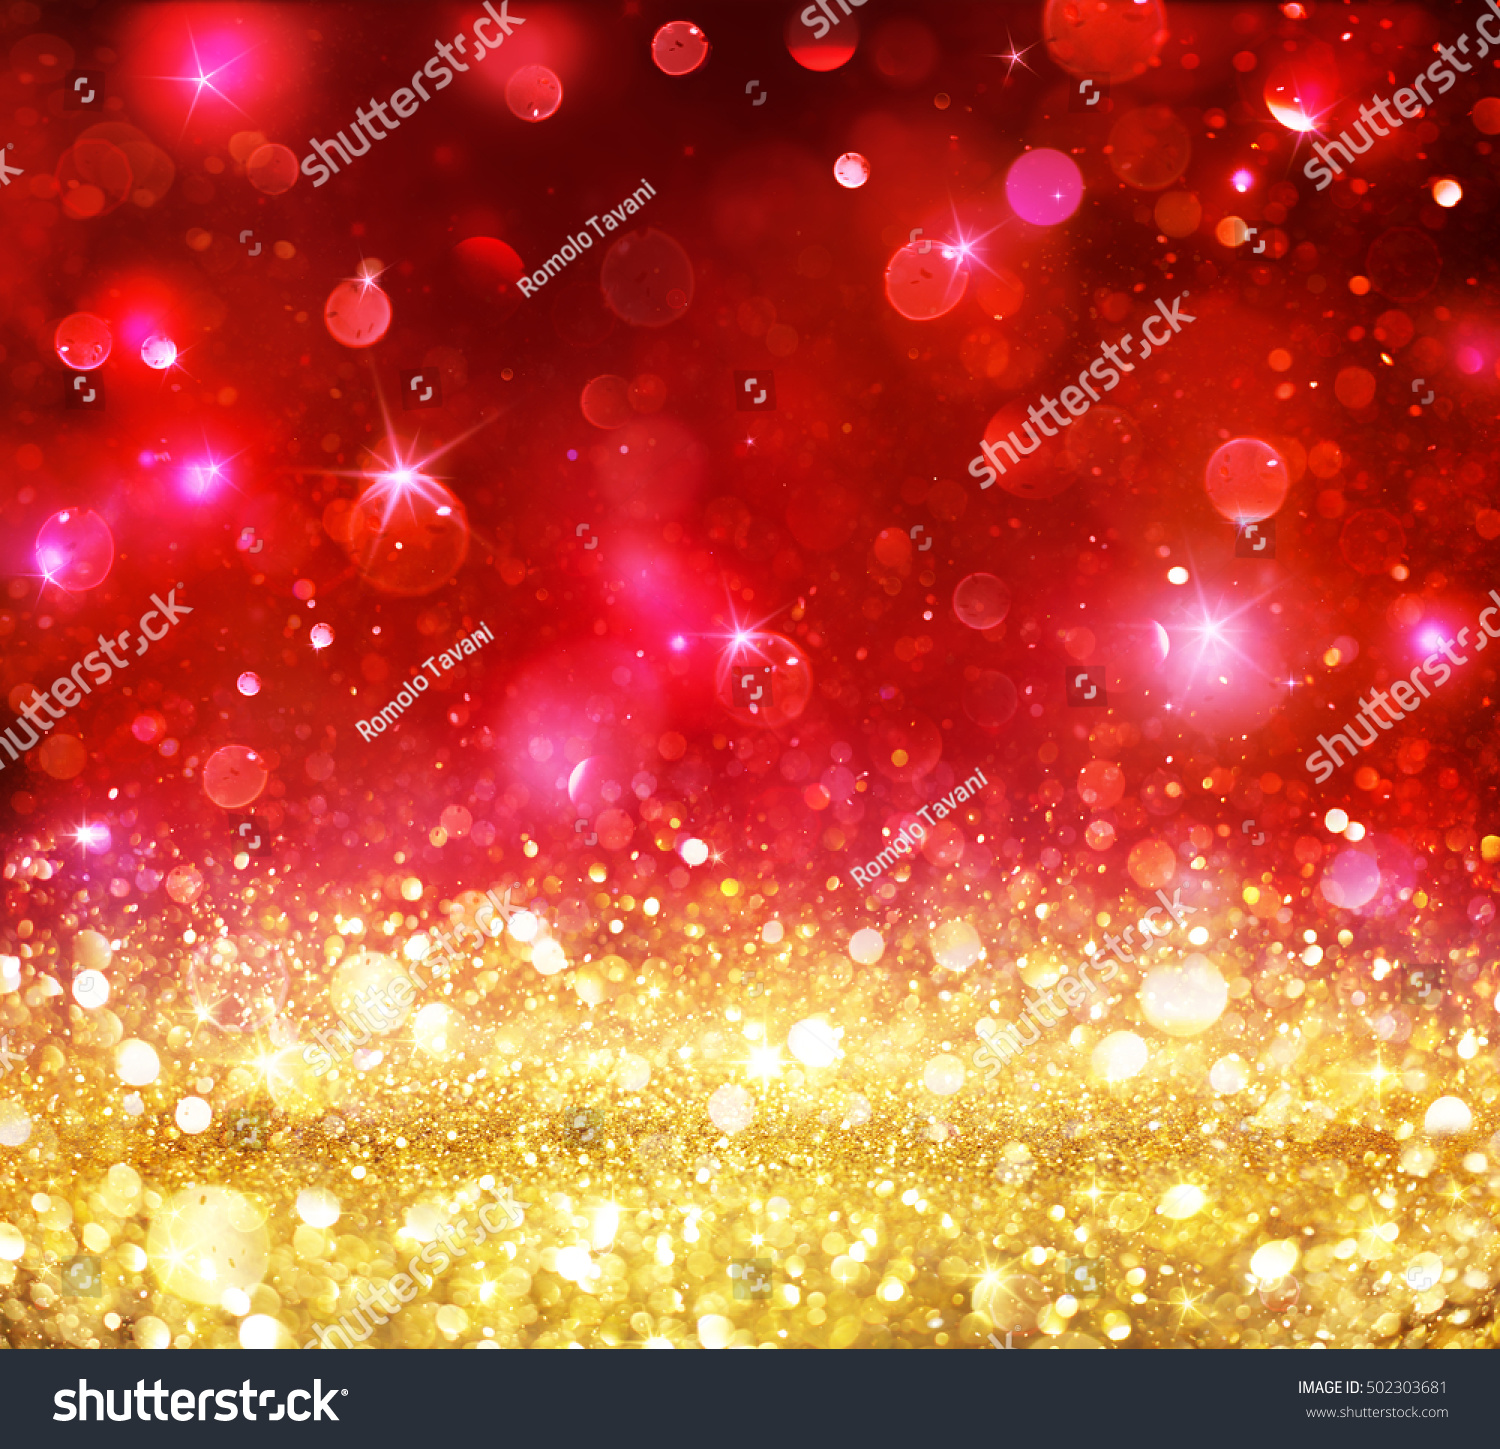 Christmas Bokeh Gold Glitter With Shining Red Backdrop